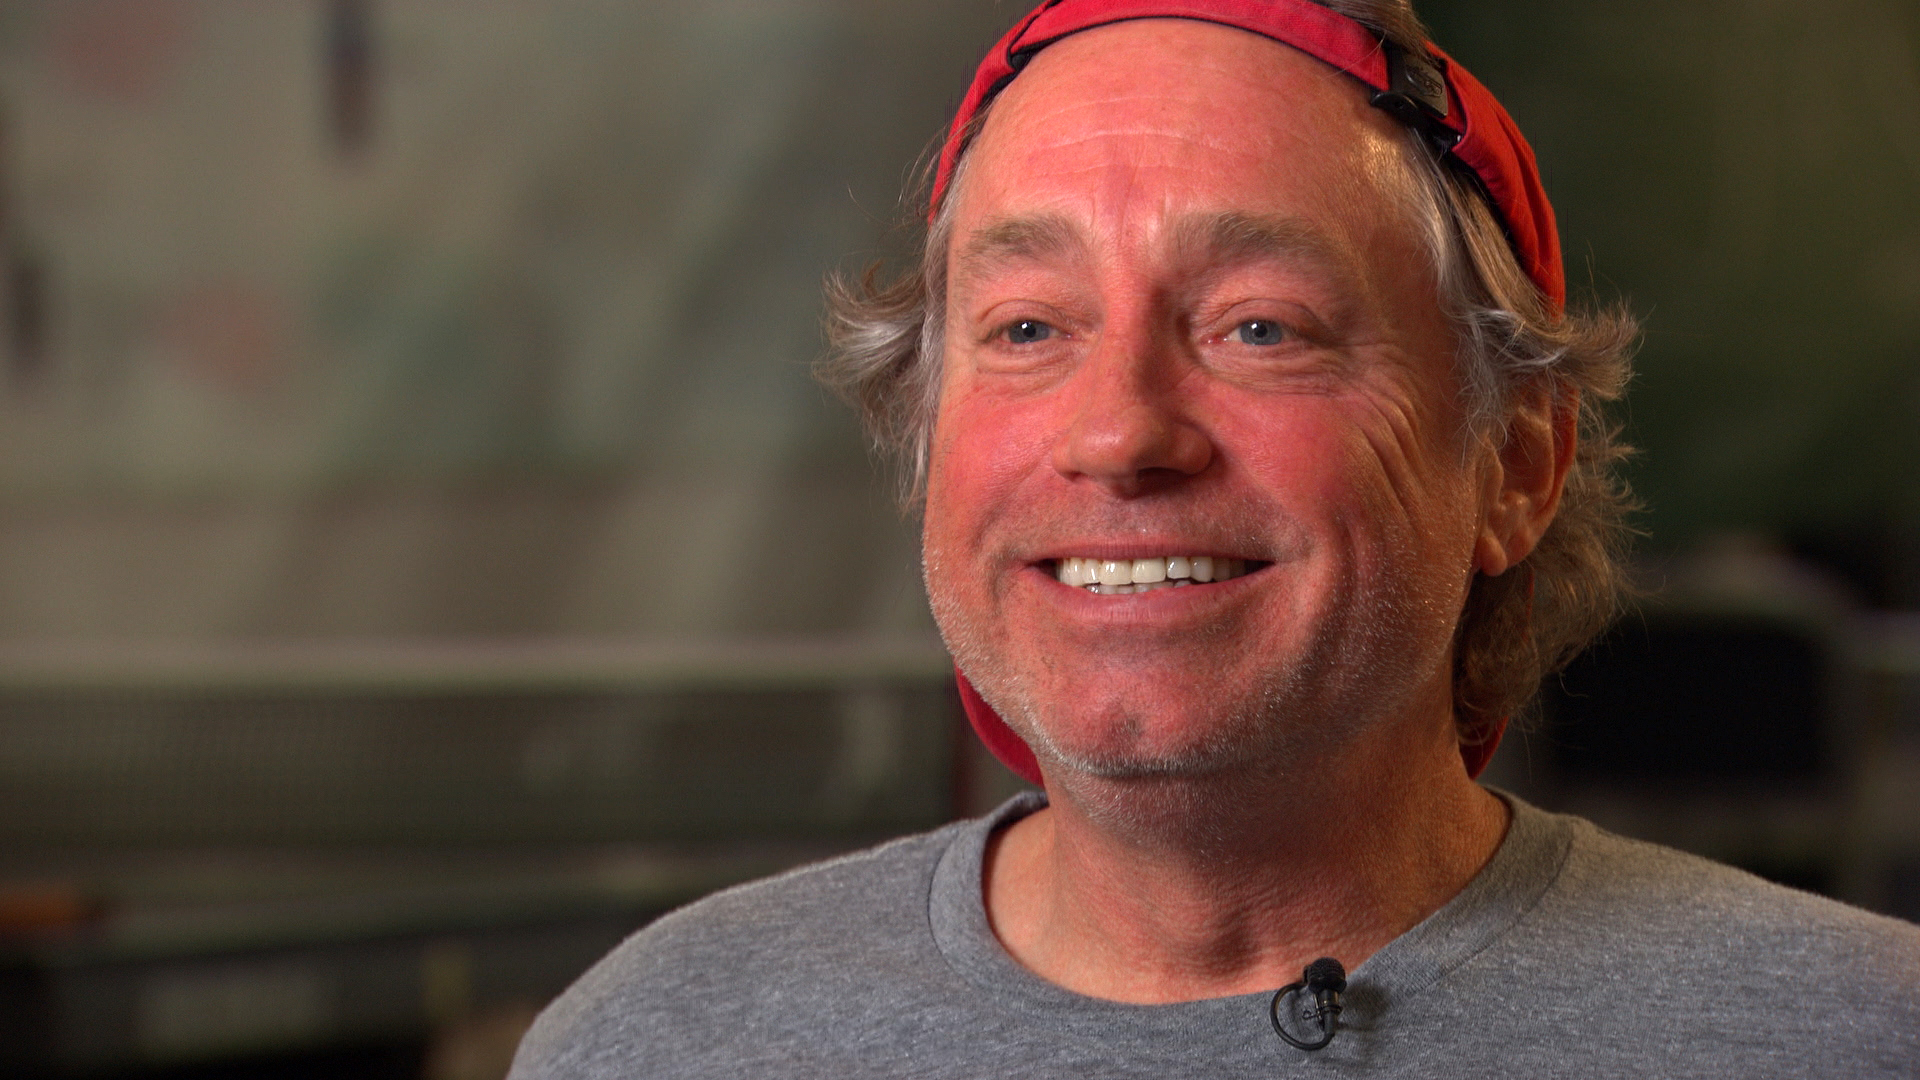 Crossfit creator says his workout can transform anyone